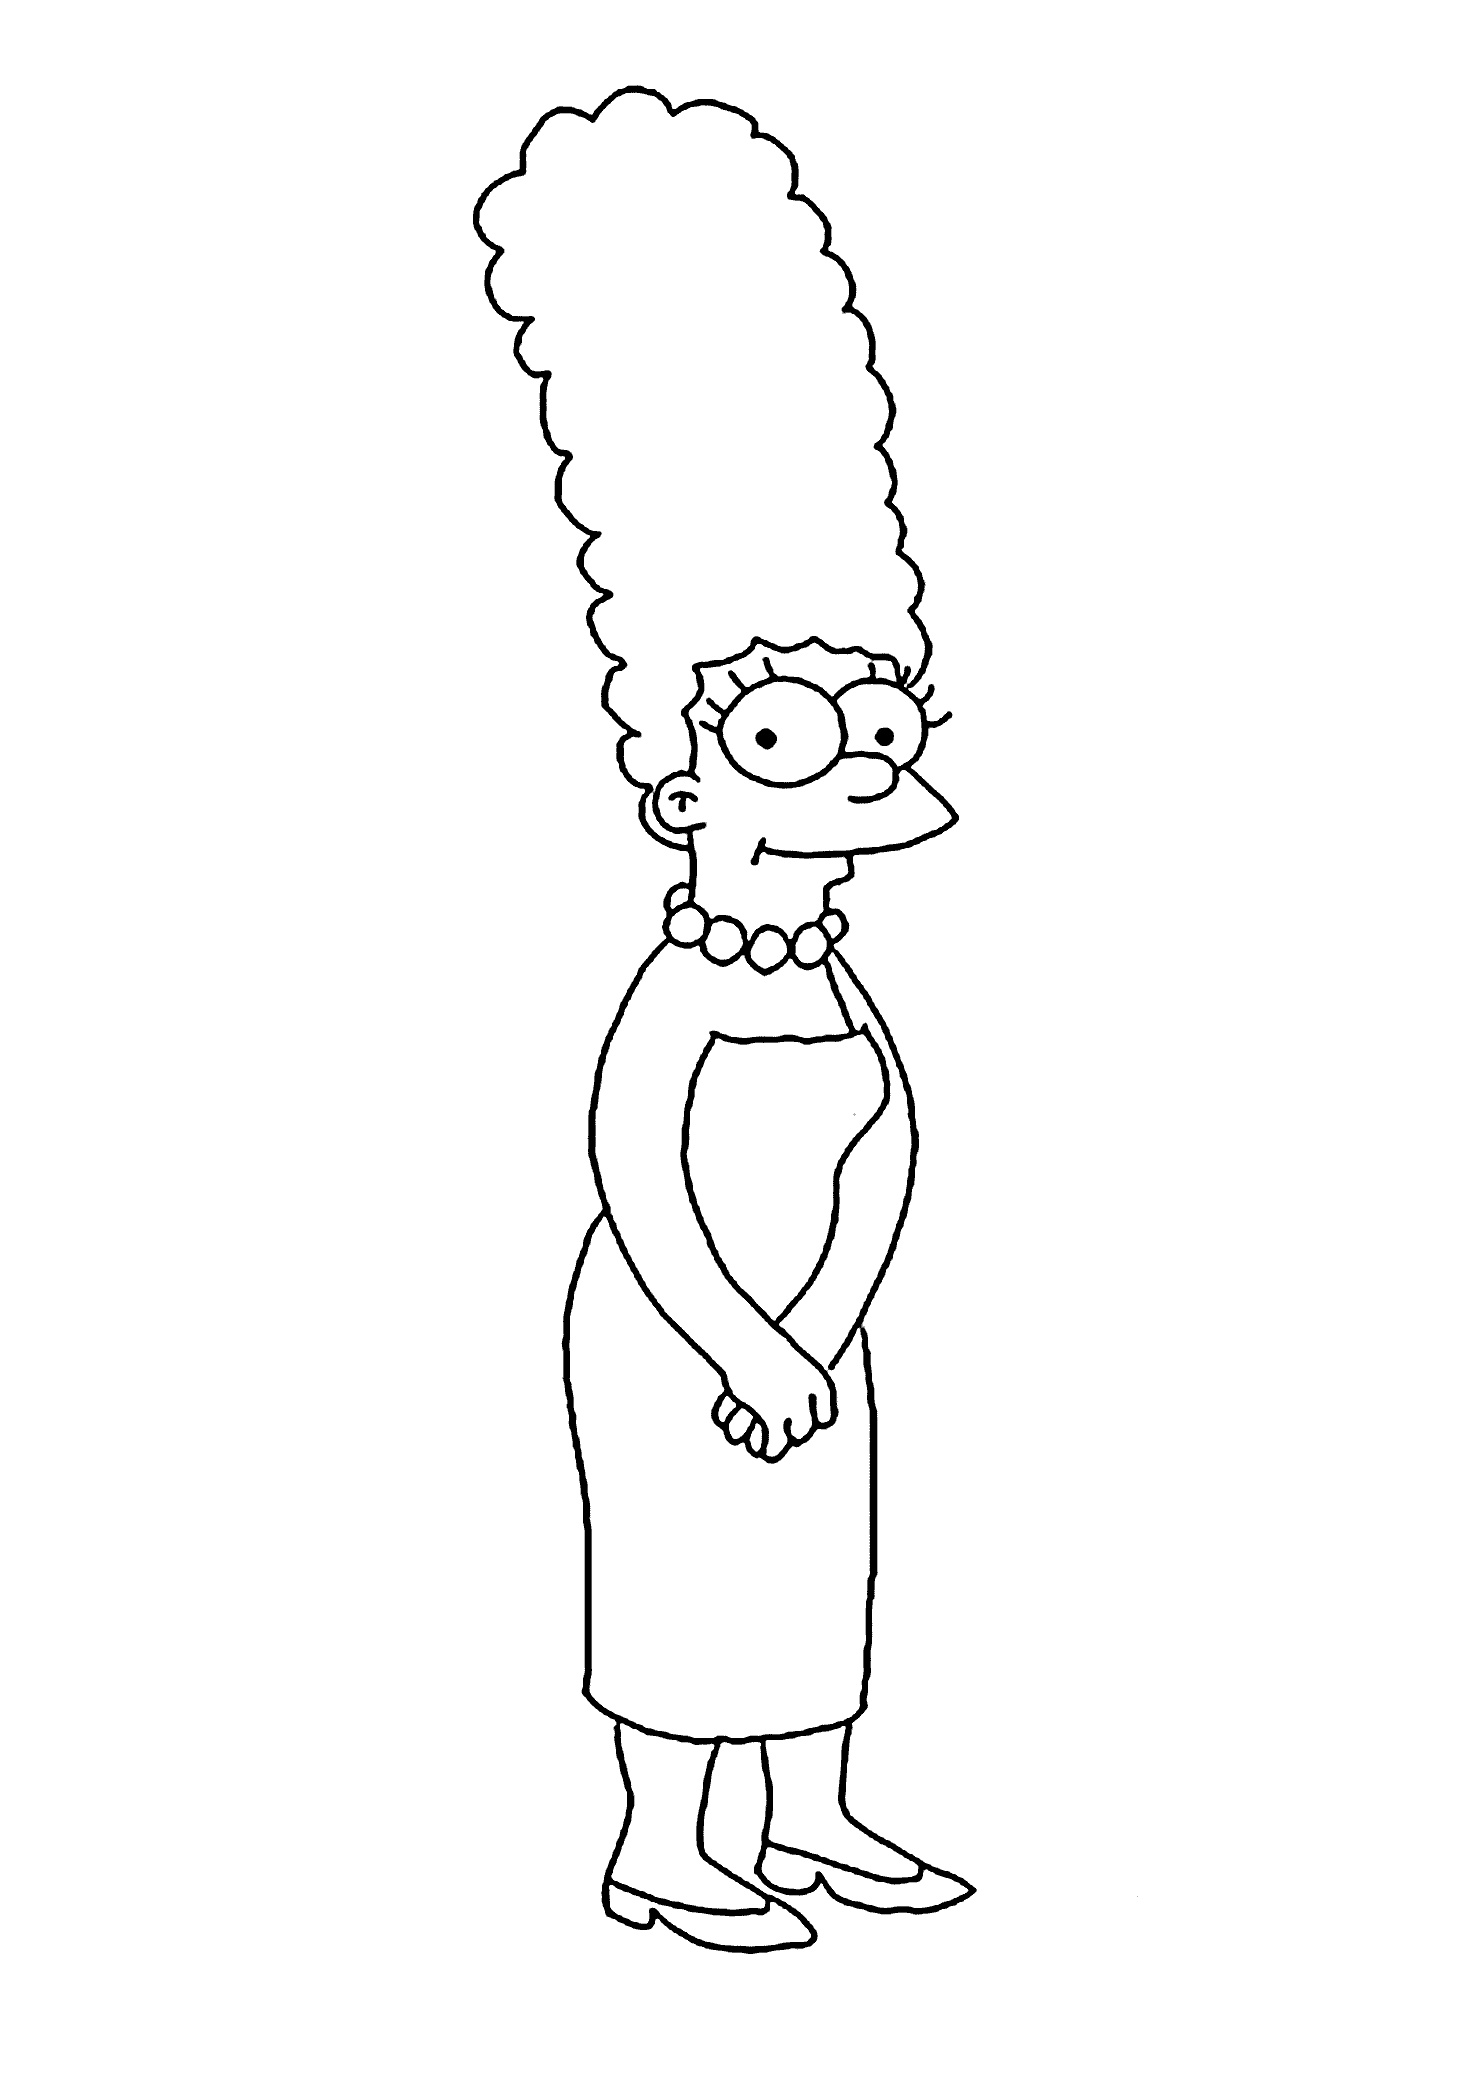 Marge Simpsons Coloring Pages Free Print and Color Sheets